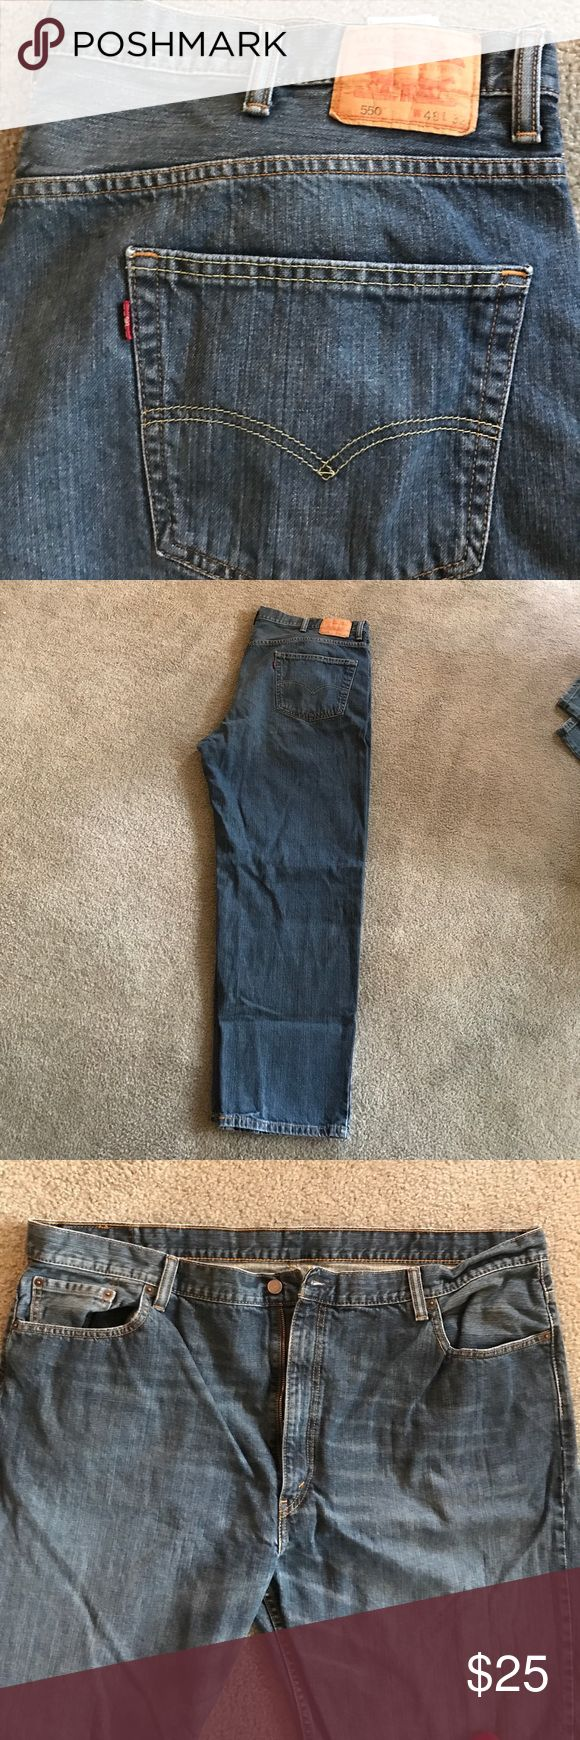 Levi 550 Jeans 48x32 Barely worn, like-new condition! Levi's Jeans Relaxed